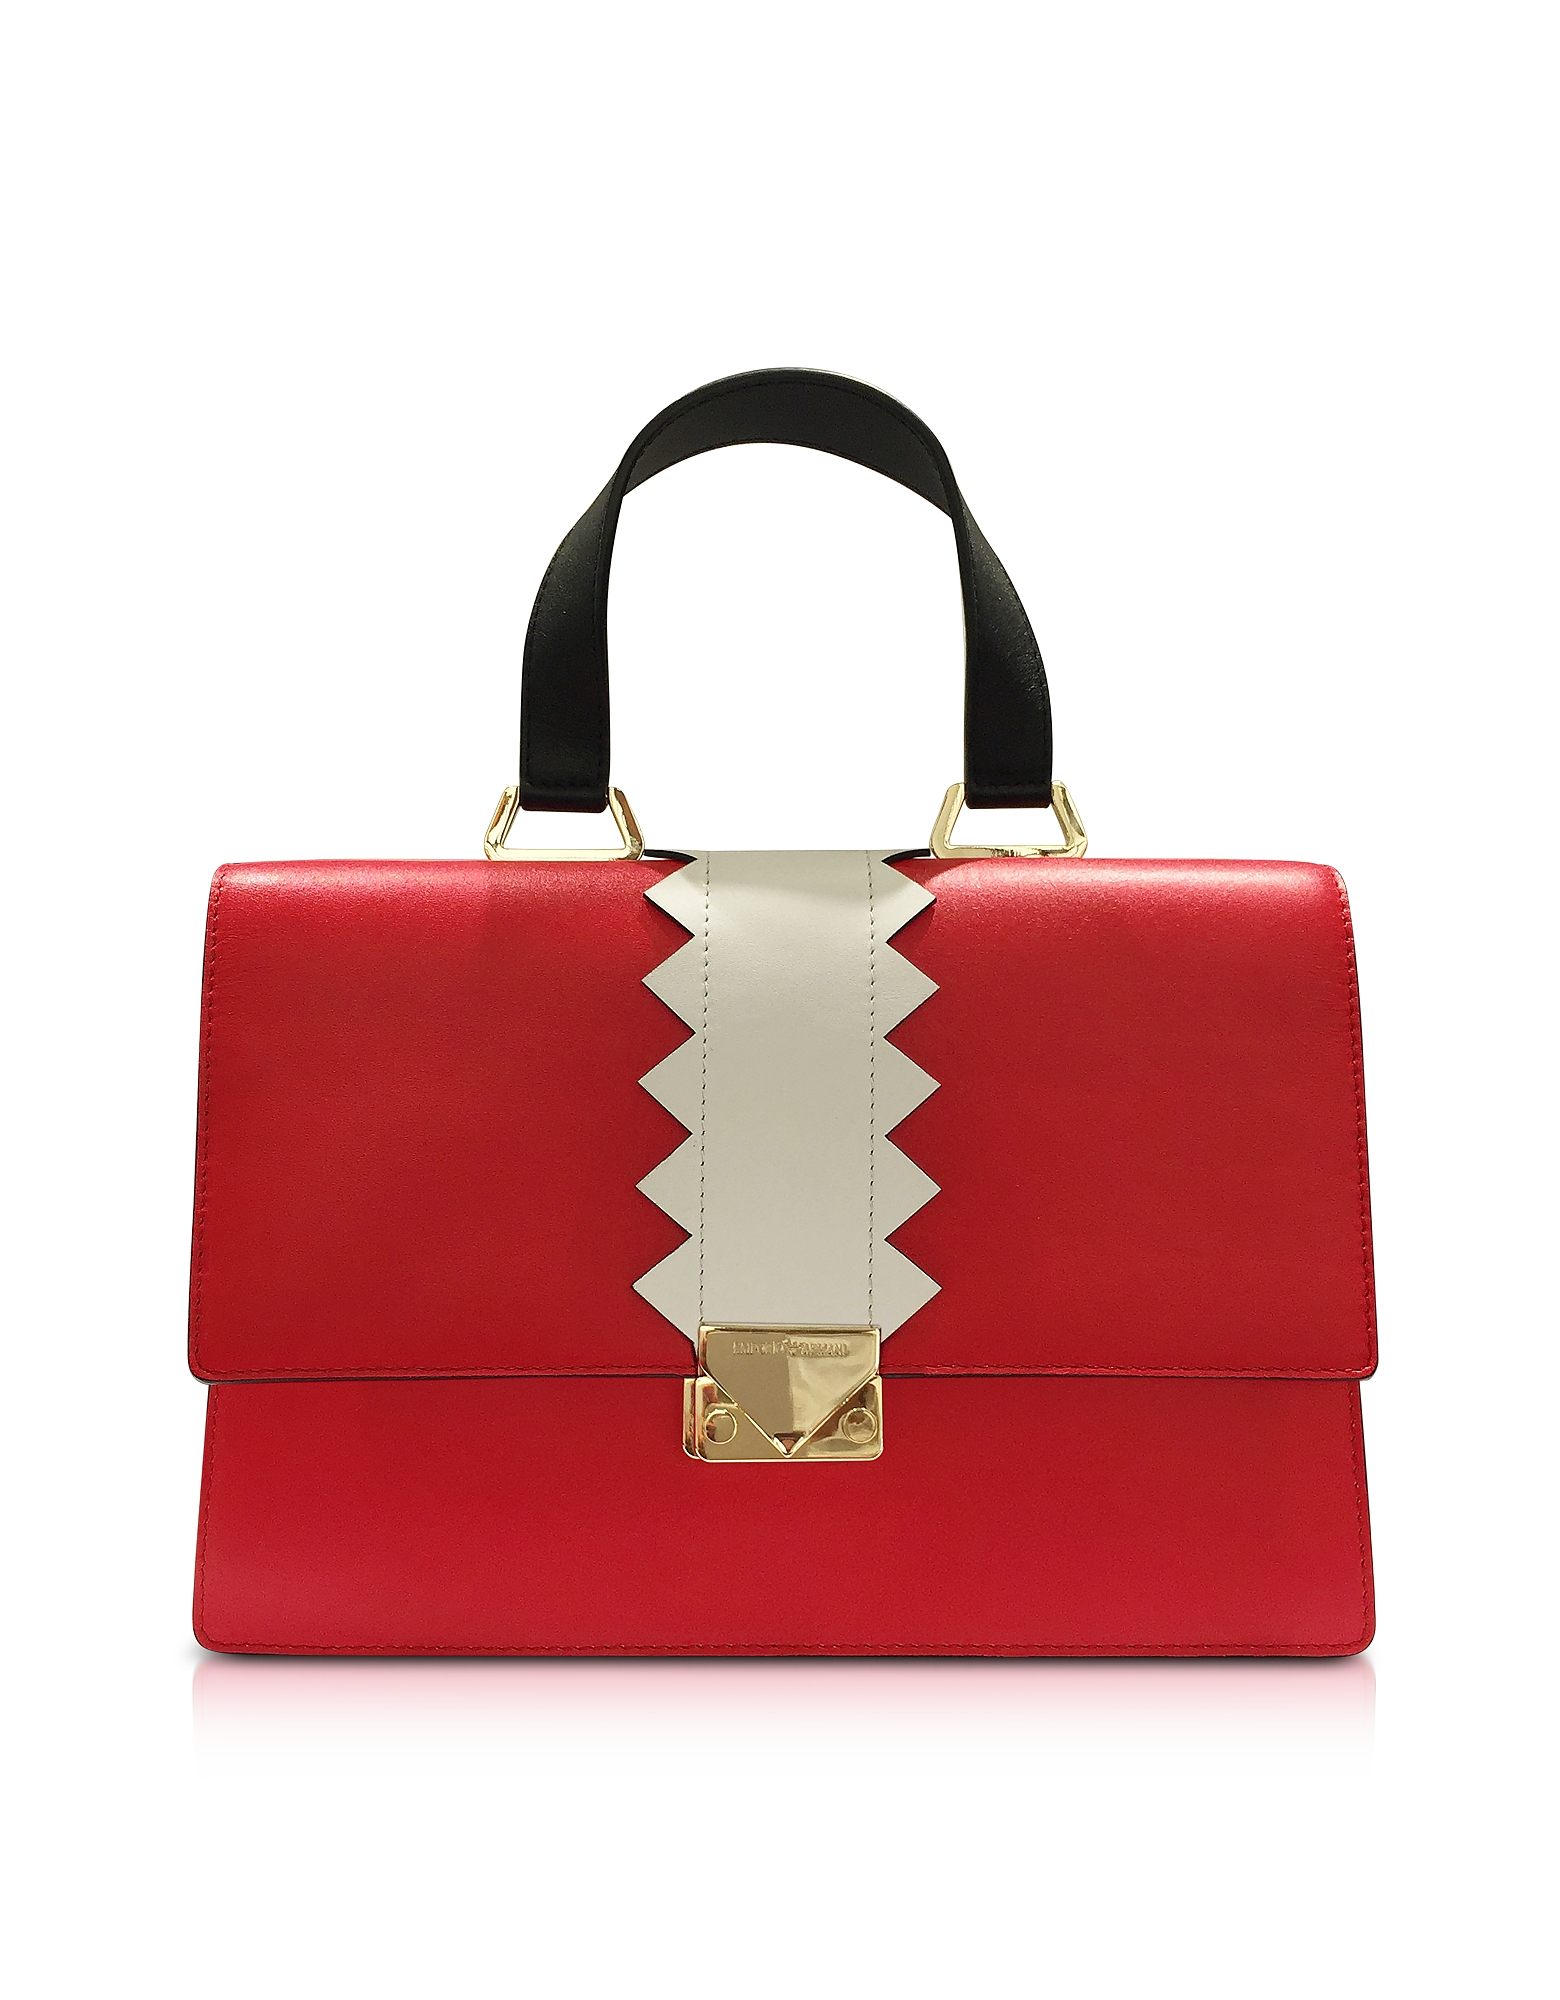 Emporio Armani Red Smooth Leather Satchel Bag  d82cf7794d673